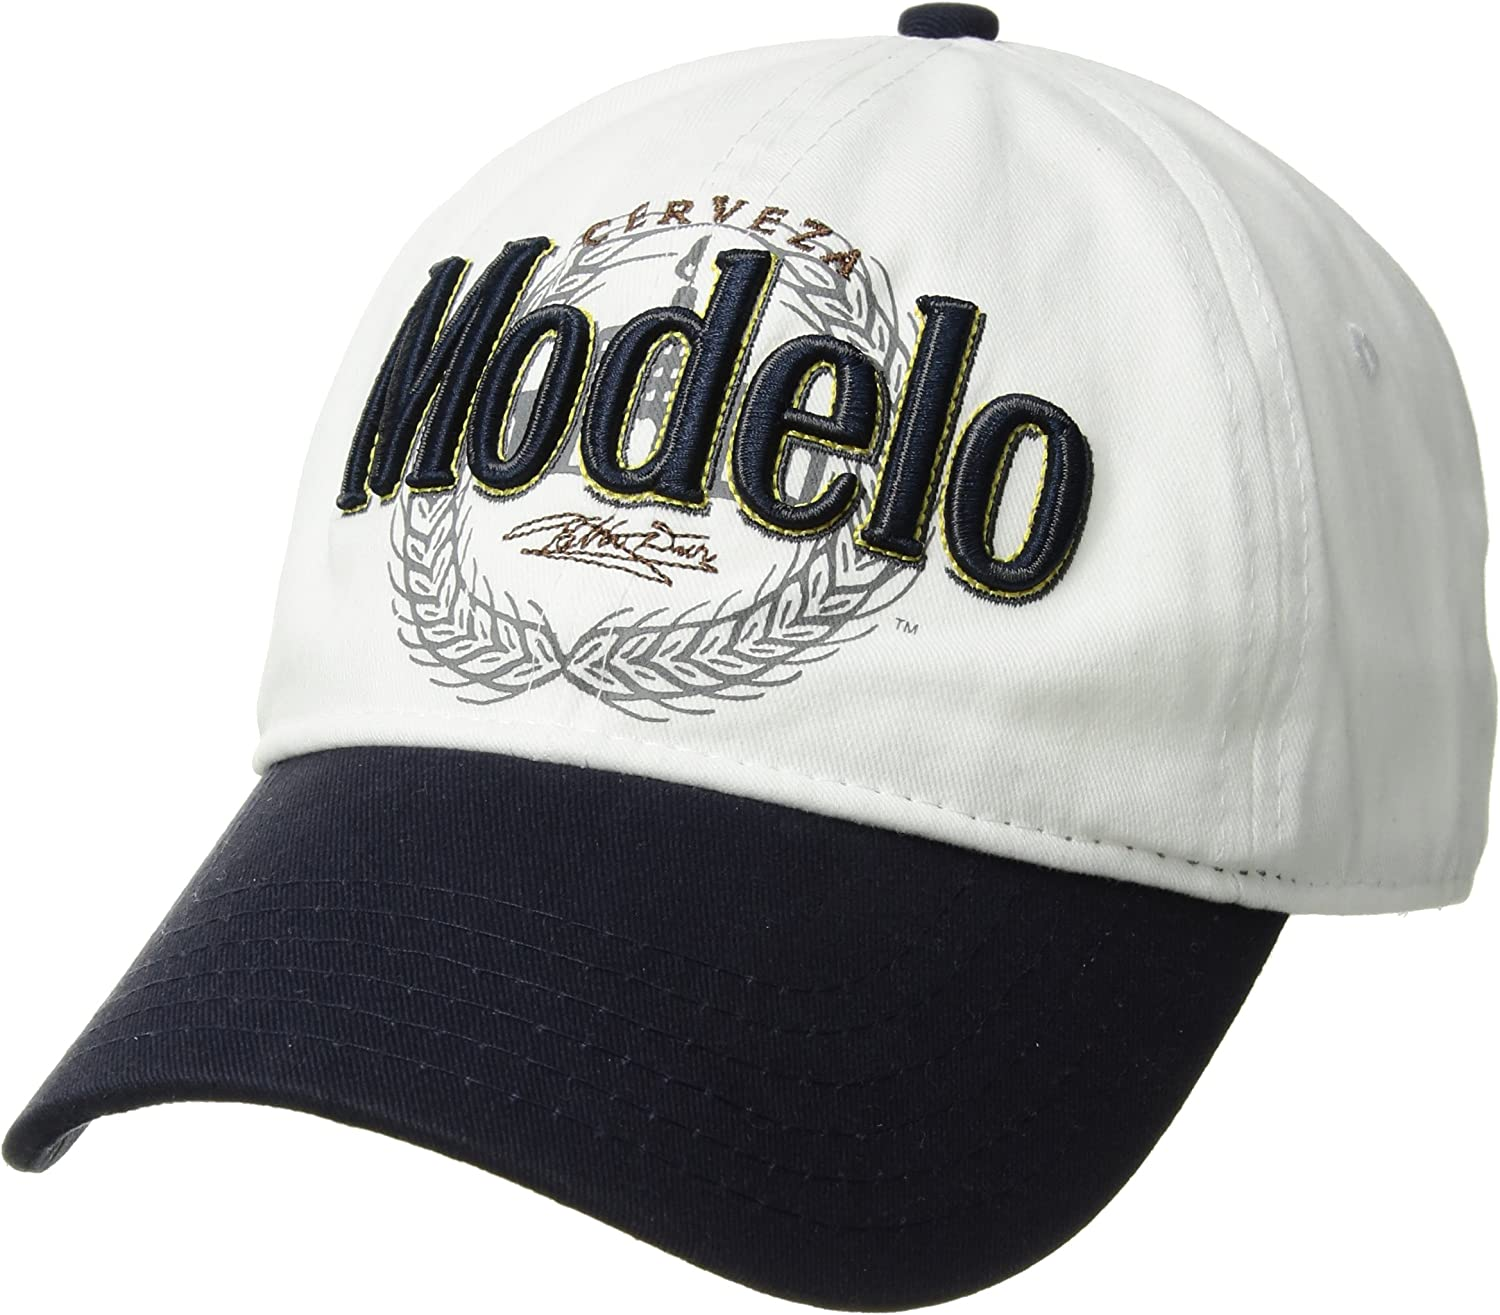 Corona Men's Cerveza Modelo Baseball Cap, Embroidered Emblem, Adjustable, White, one Size